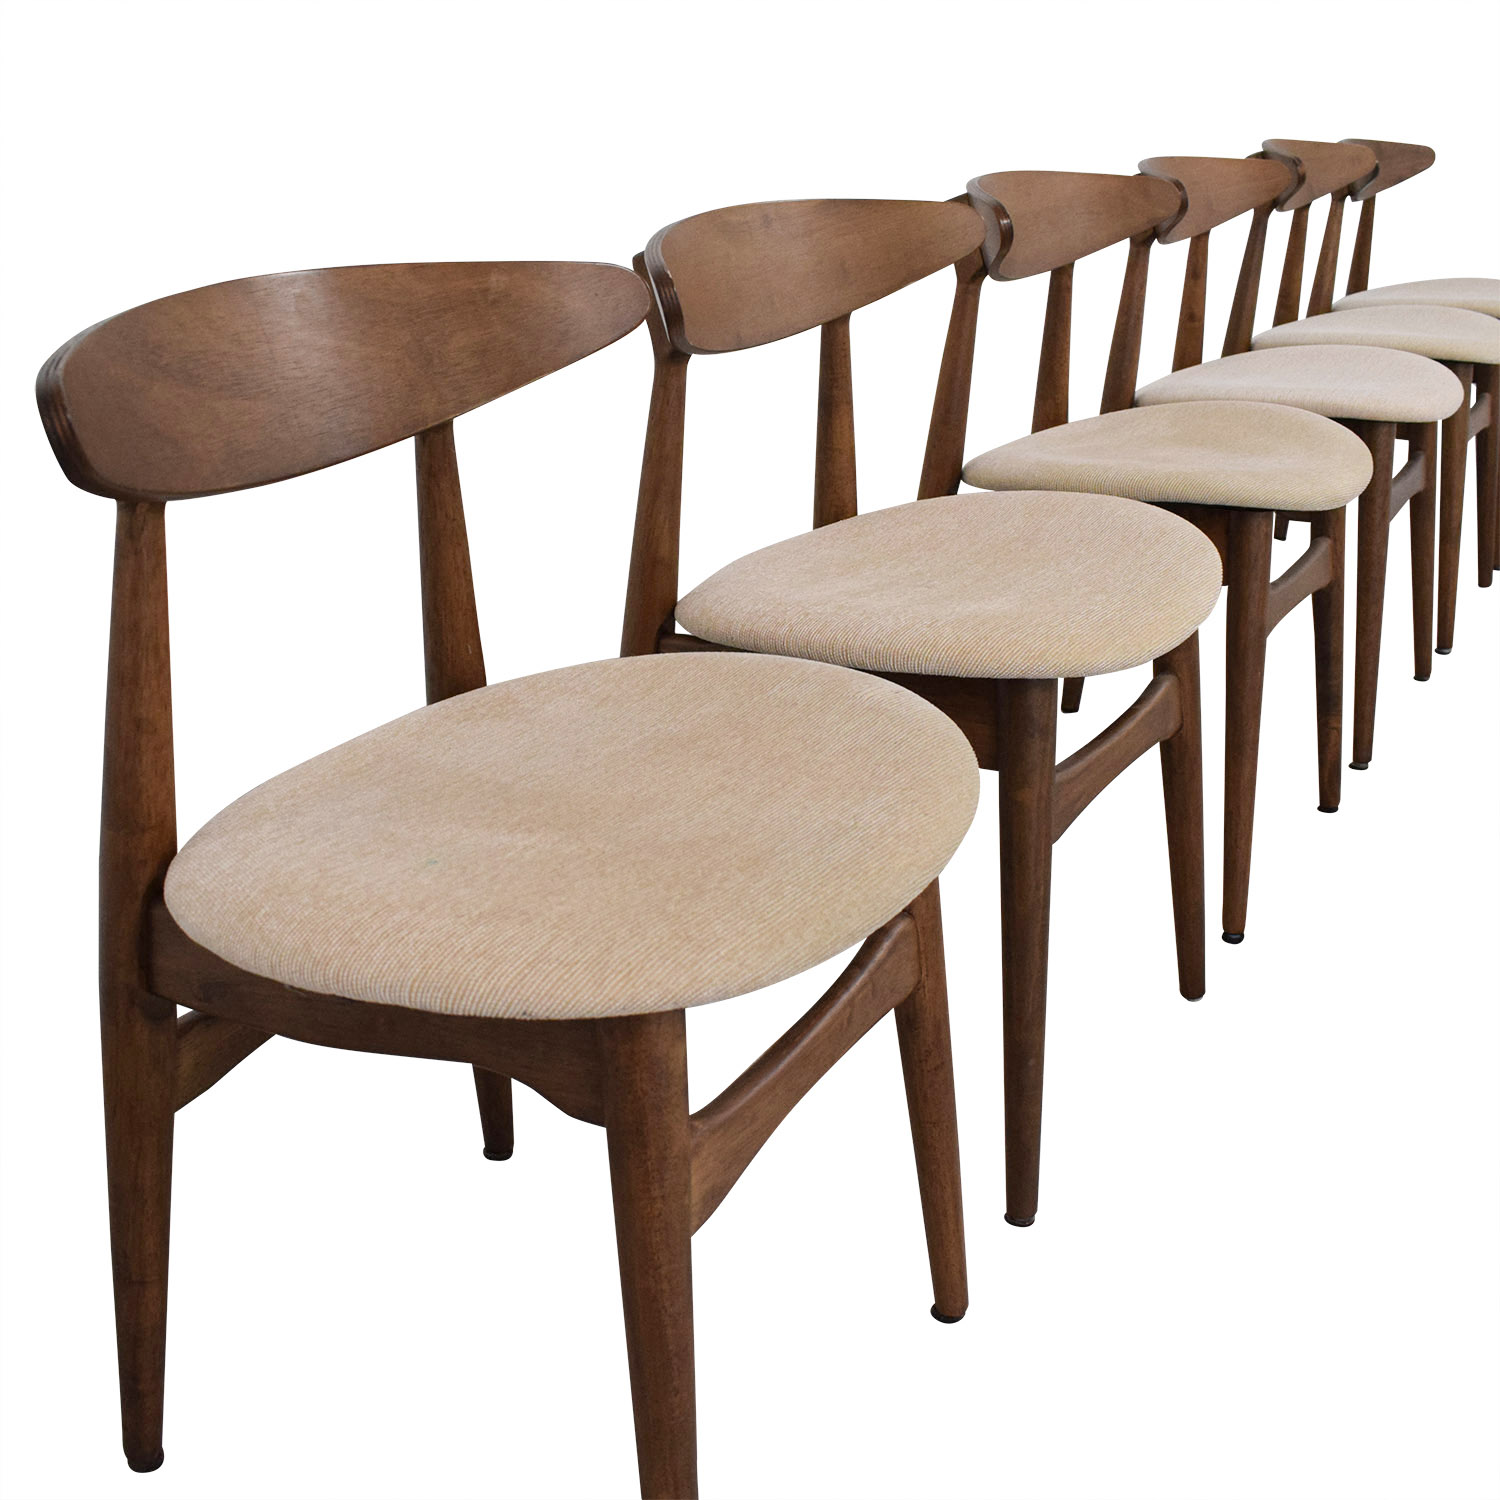 64% OFF - AllModern All Modern Mid Century Modern Dining Chairs ...